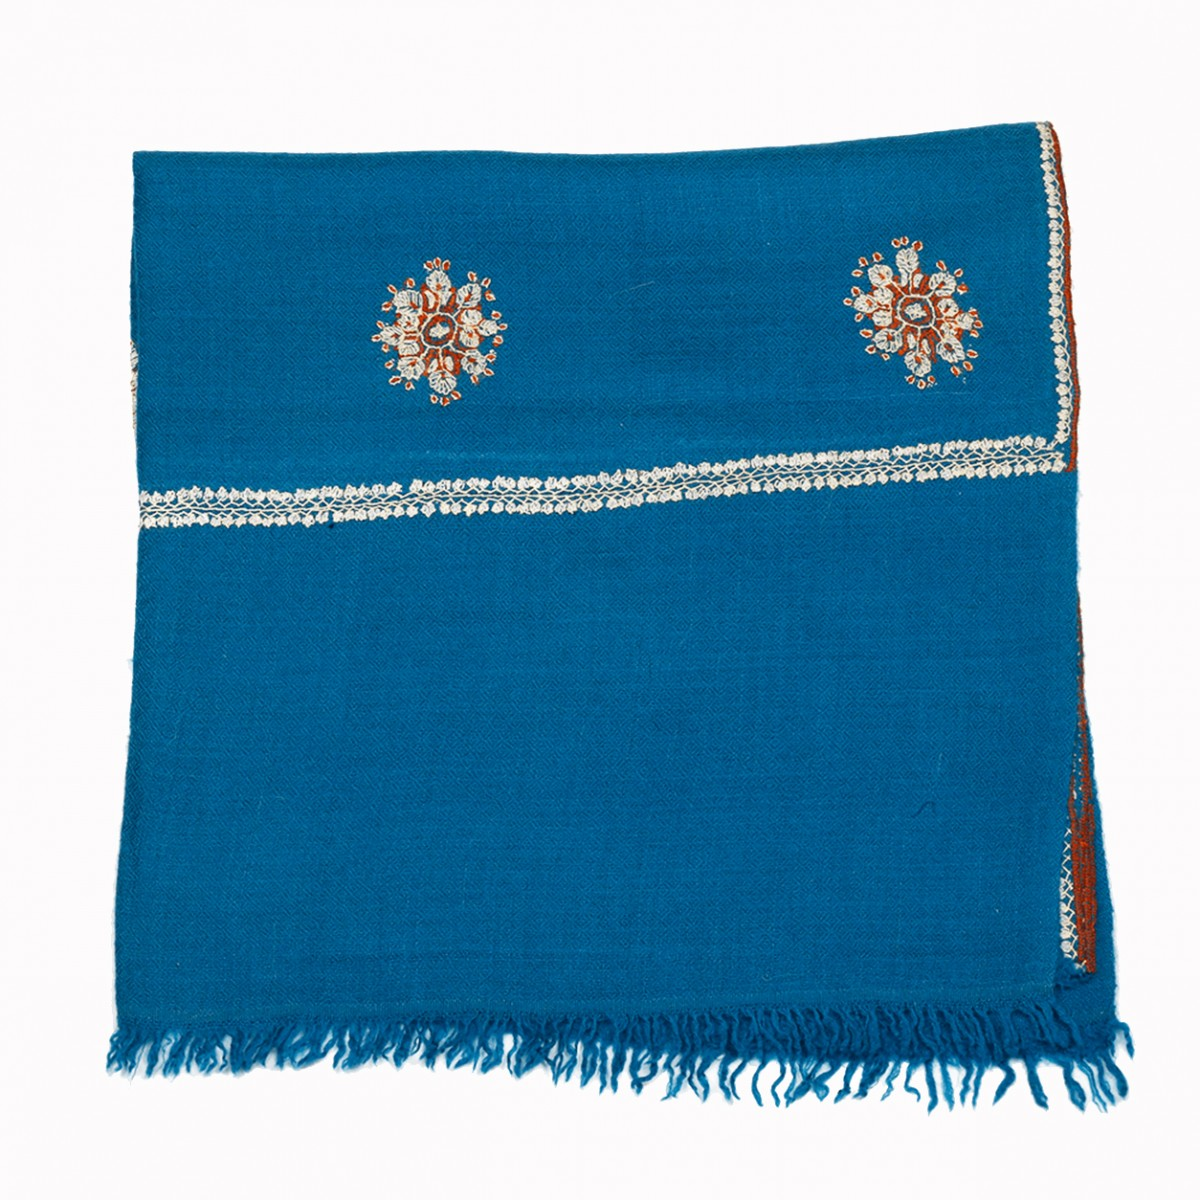 Embroidered Handloom Pashmina Stole - Cerulean